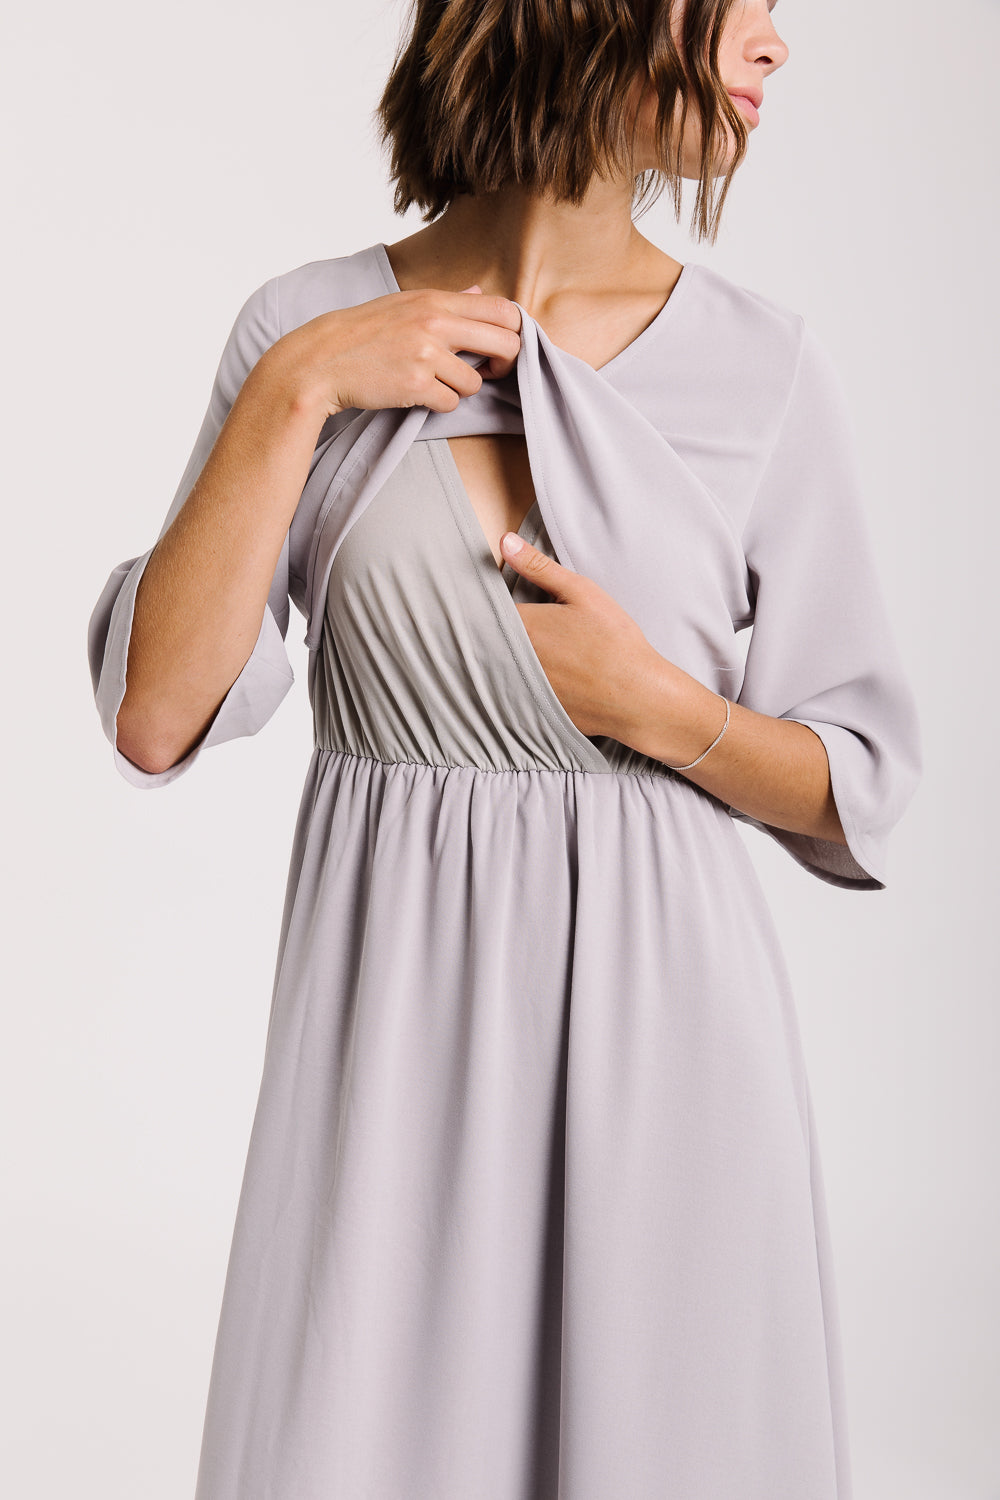 Piper & Scoot: The Bertram Bib Maxi Dress in Light Grey